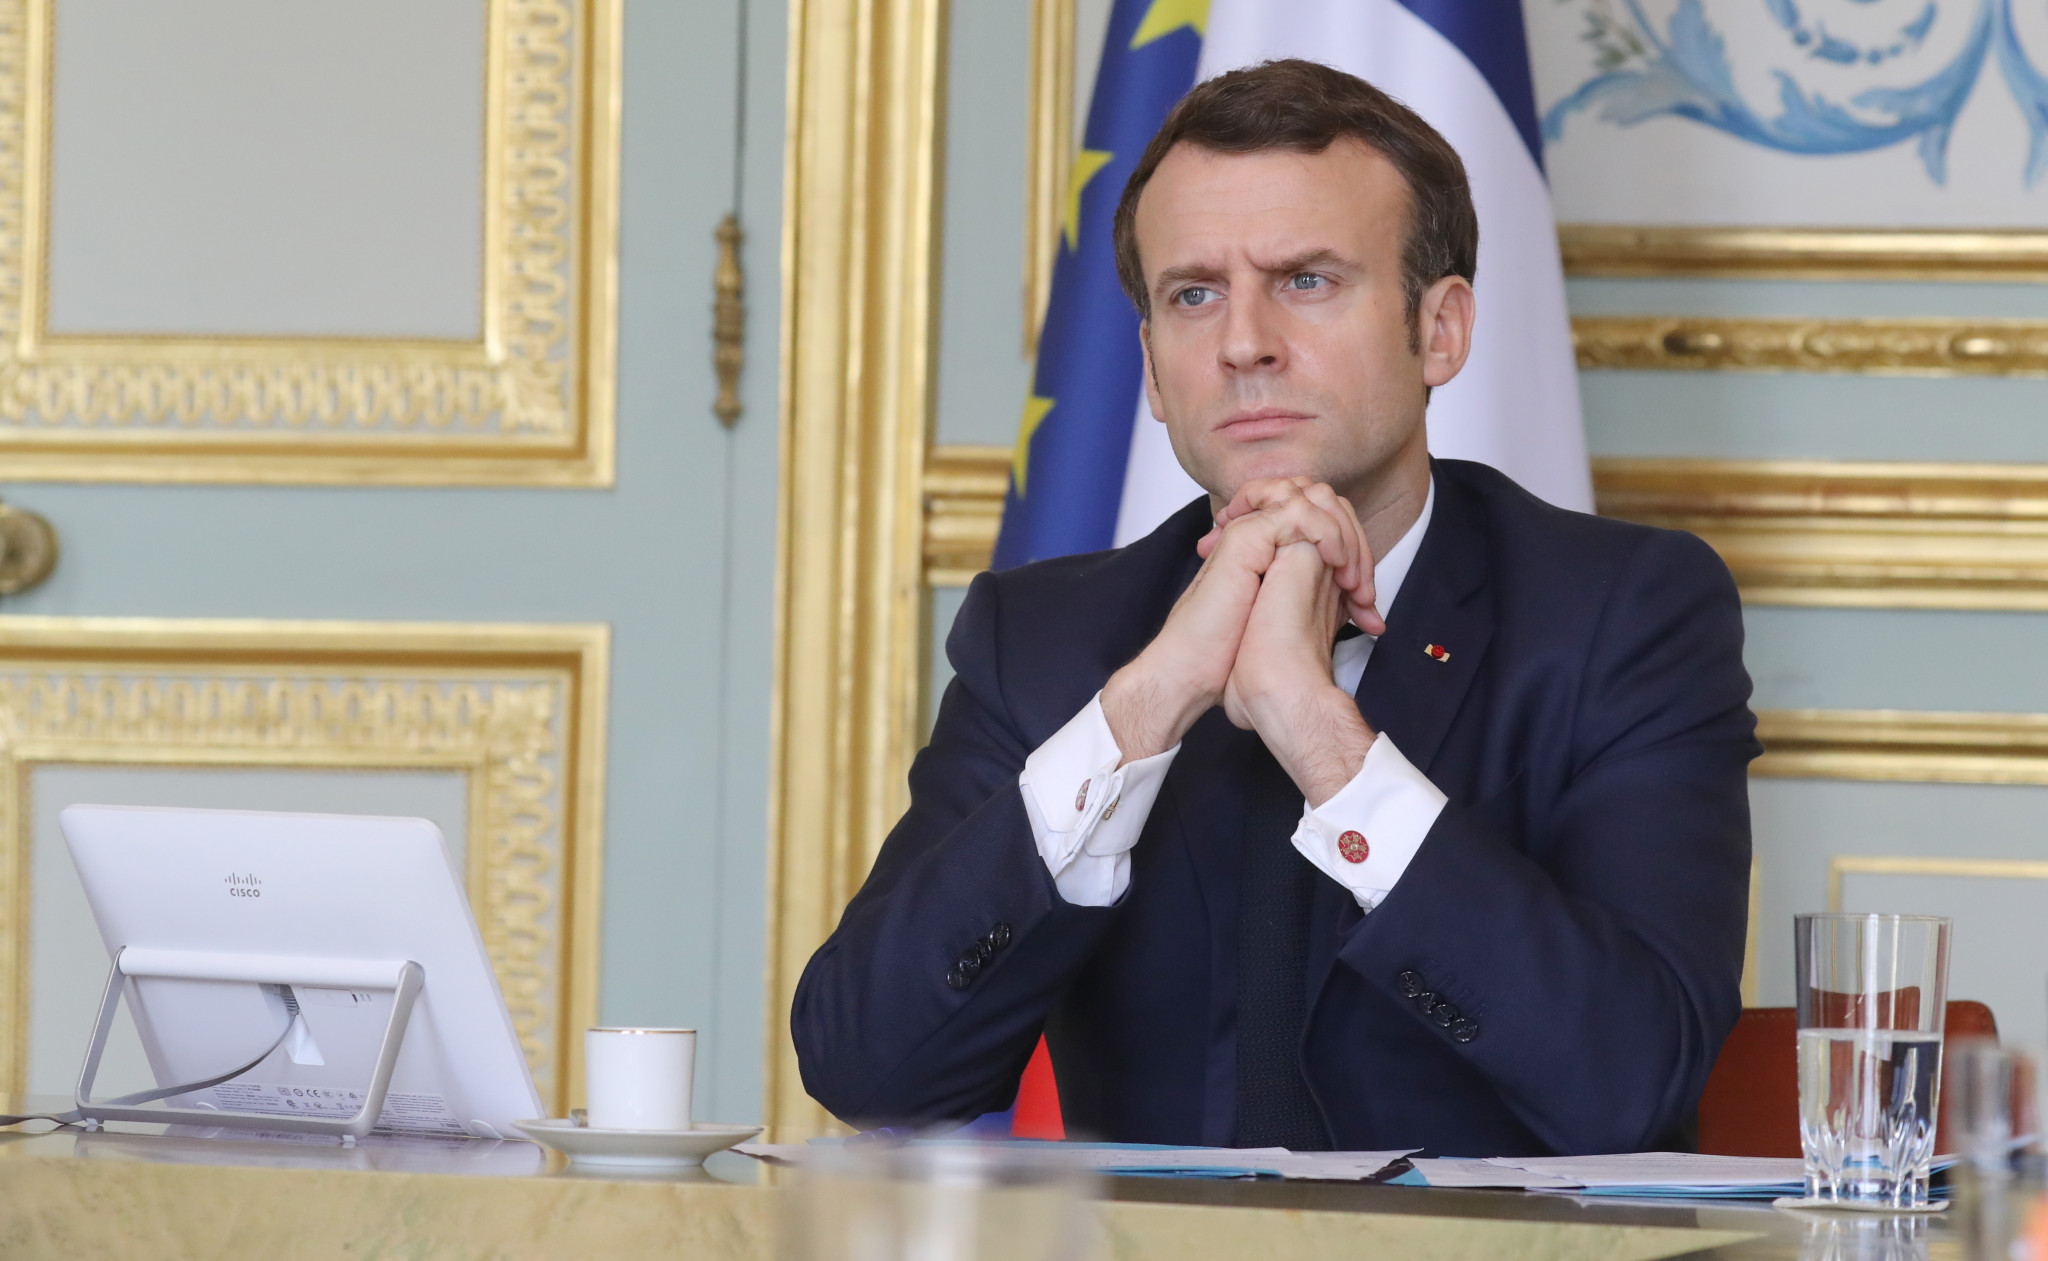 French President Emmanuel Macron has pledged to rebuild Notre-Dame in time for the Paris 2024 Olympic and Paralympic Games ©Getty Images